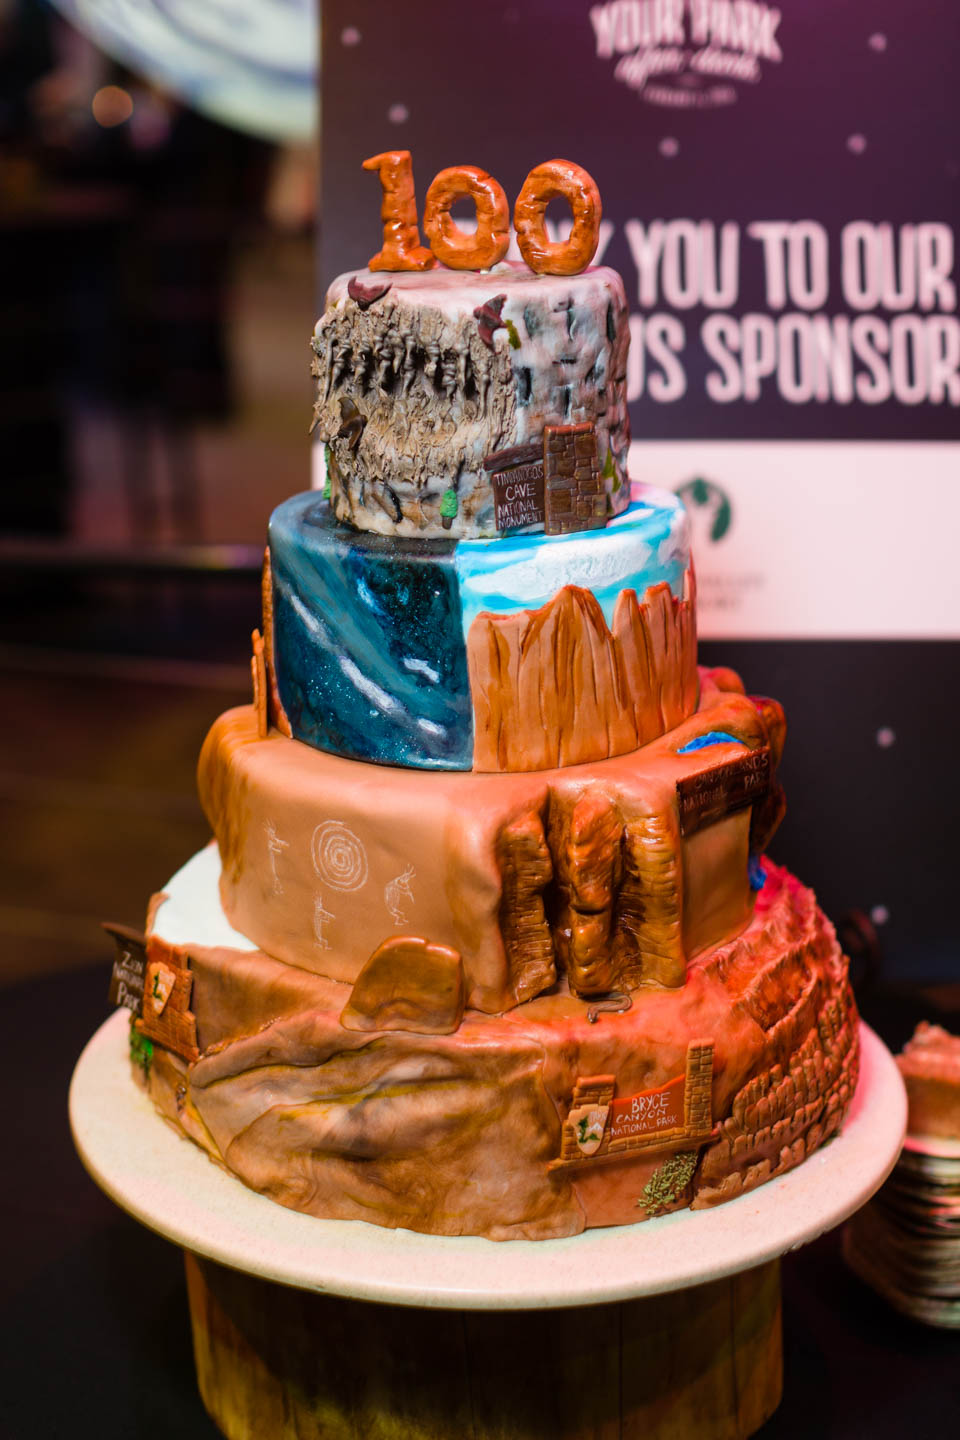 A really cool cake celebrating the National Parks